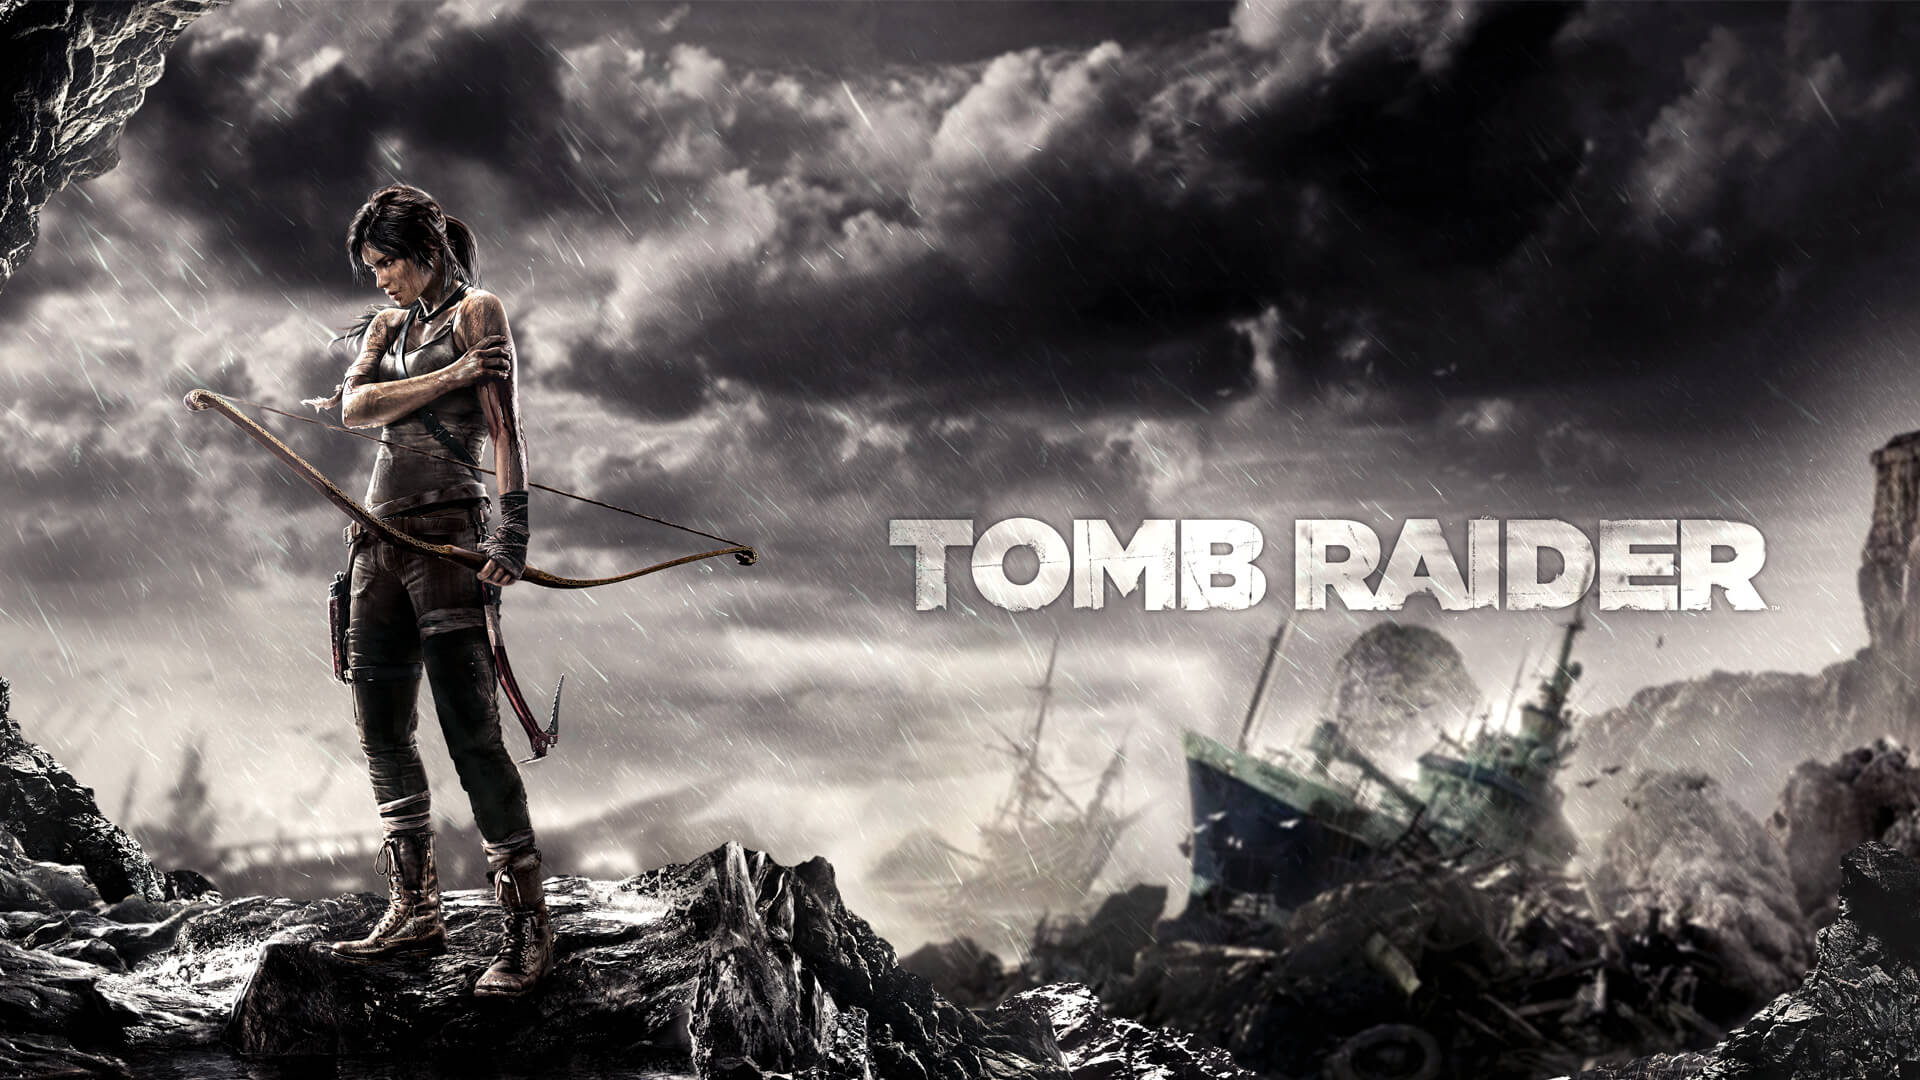 tomb raider game 2013 walkthrough